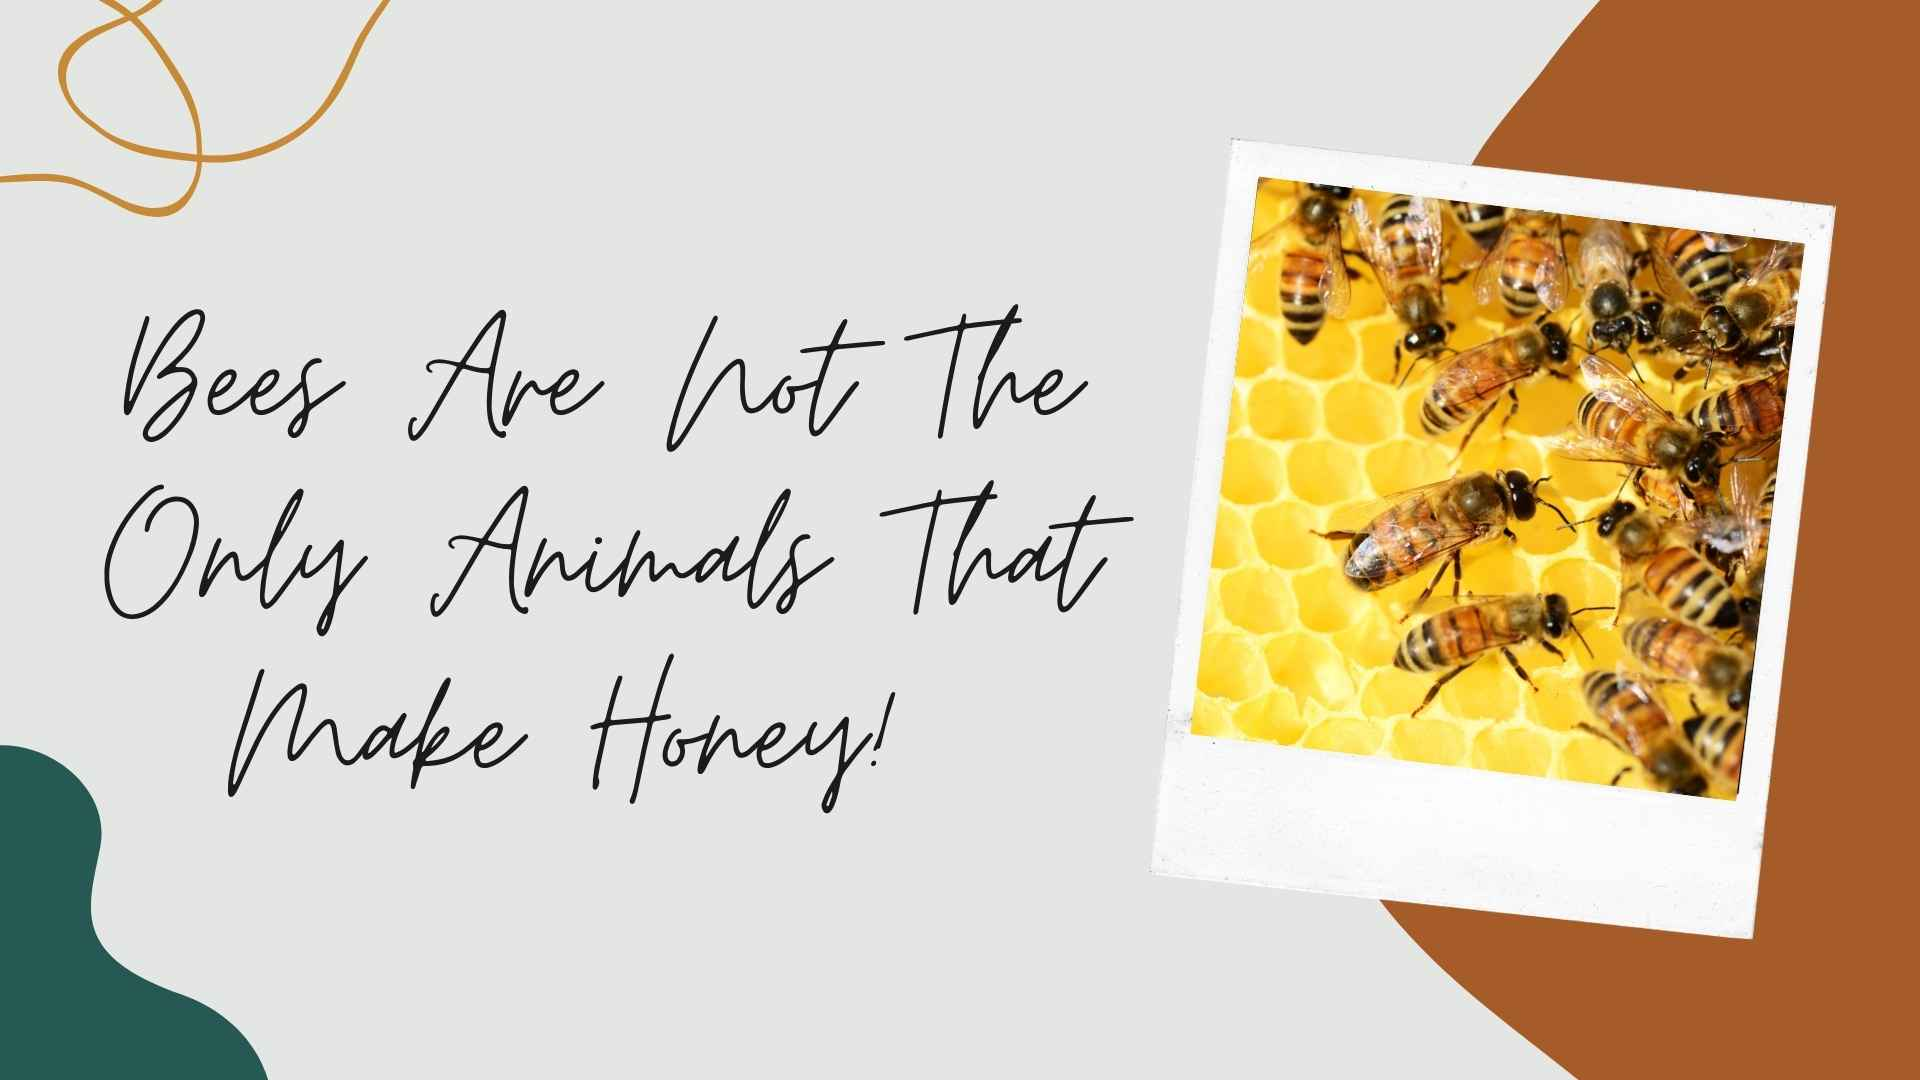 Bees Are Not The Only Animals That Make Honey!